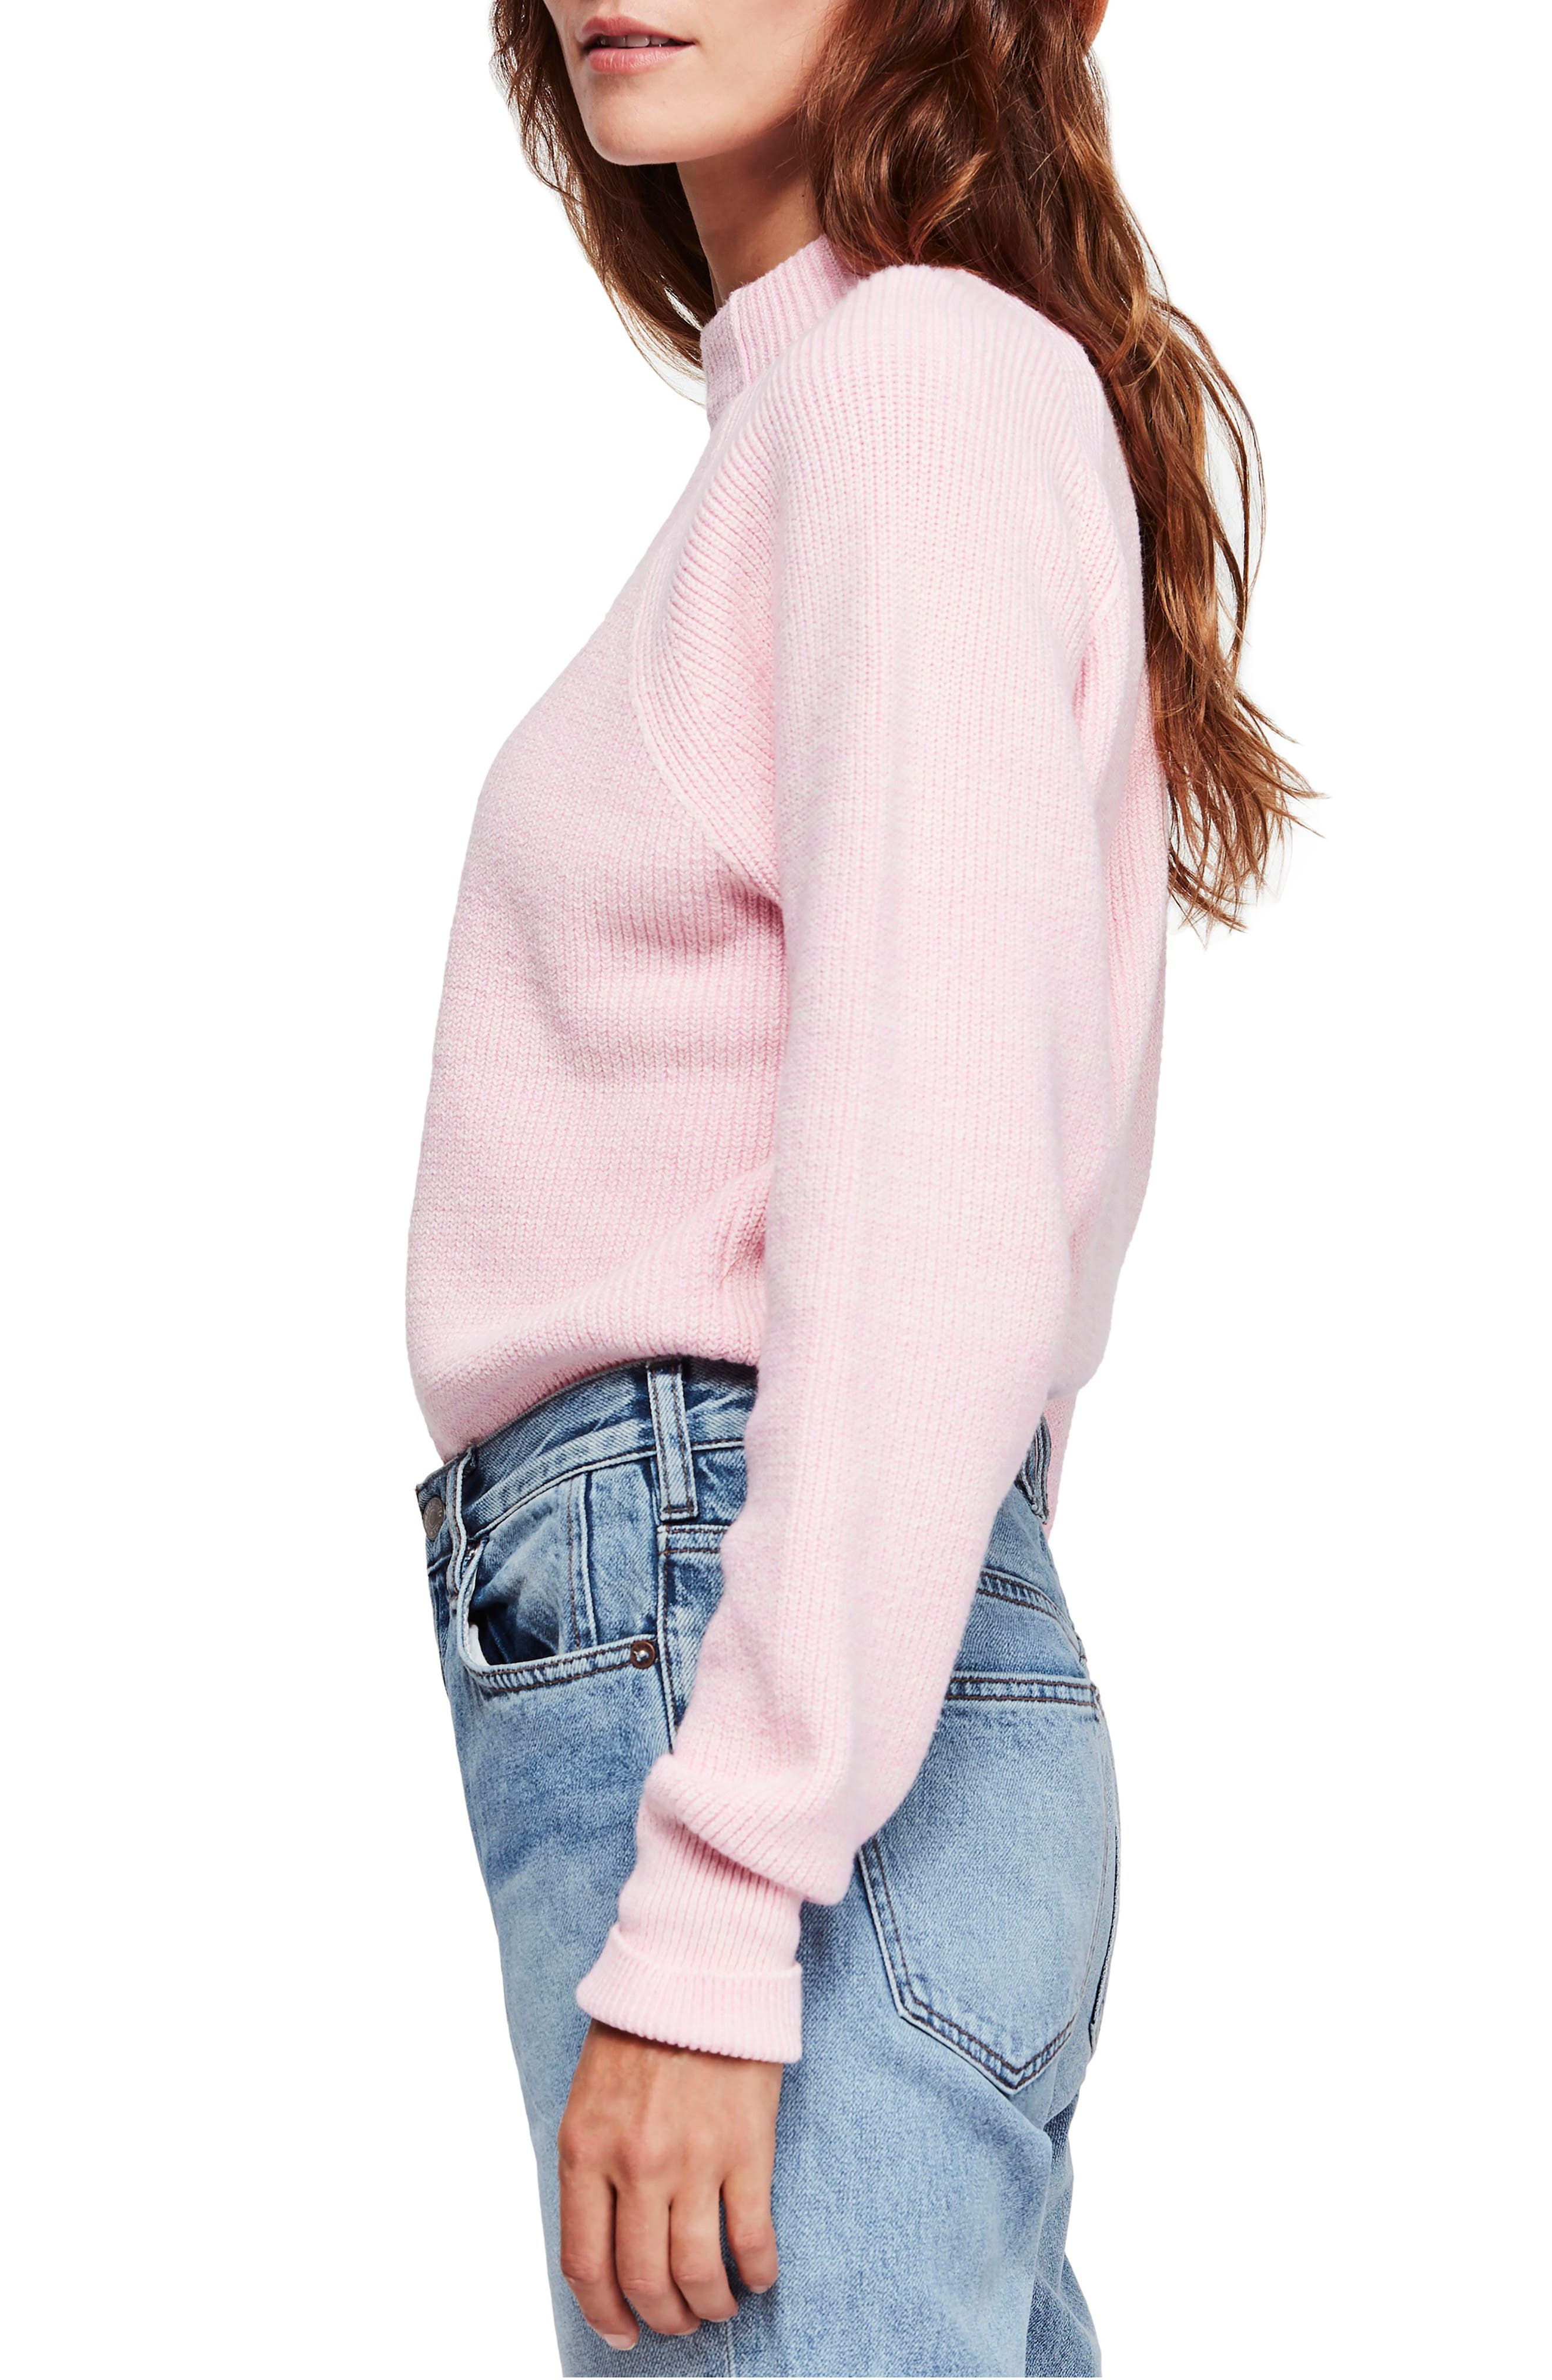 Too Good Sweater,                             Alternate thumbnail 3, color,                             PINK